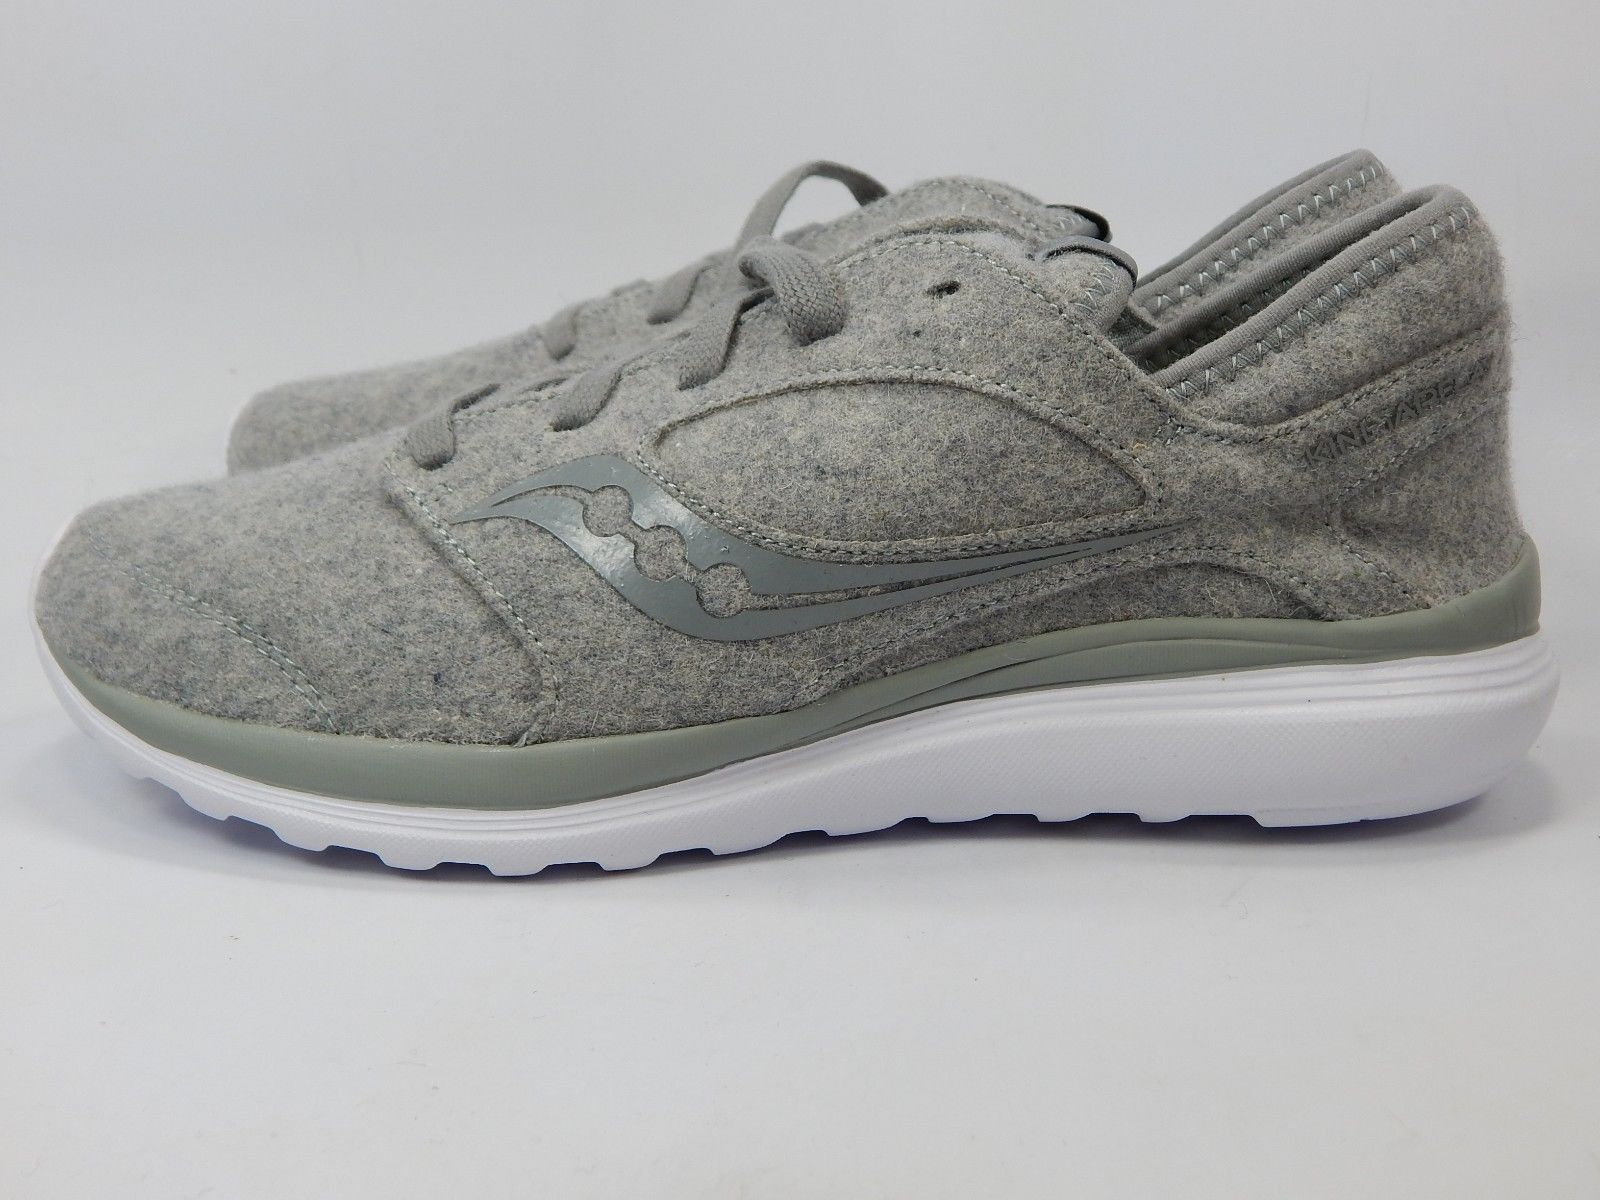 Saucony Kineta Relay Wool Men's Running Shoes Size 9 M EU 42.5 Grey S25244-45